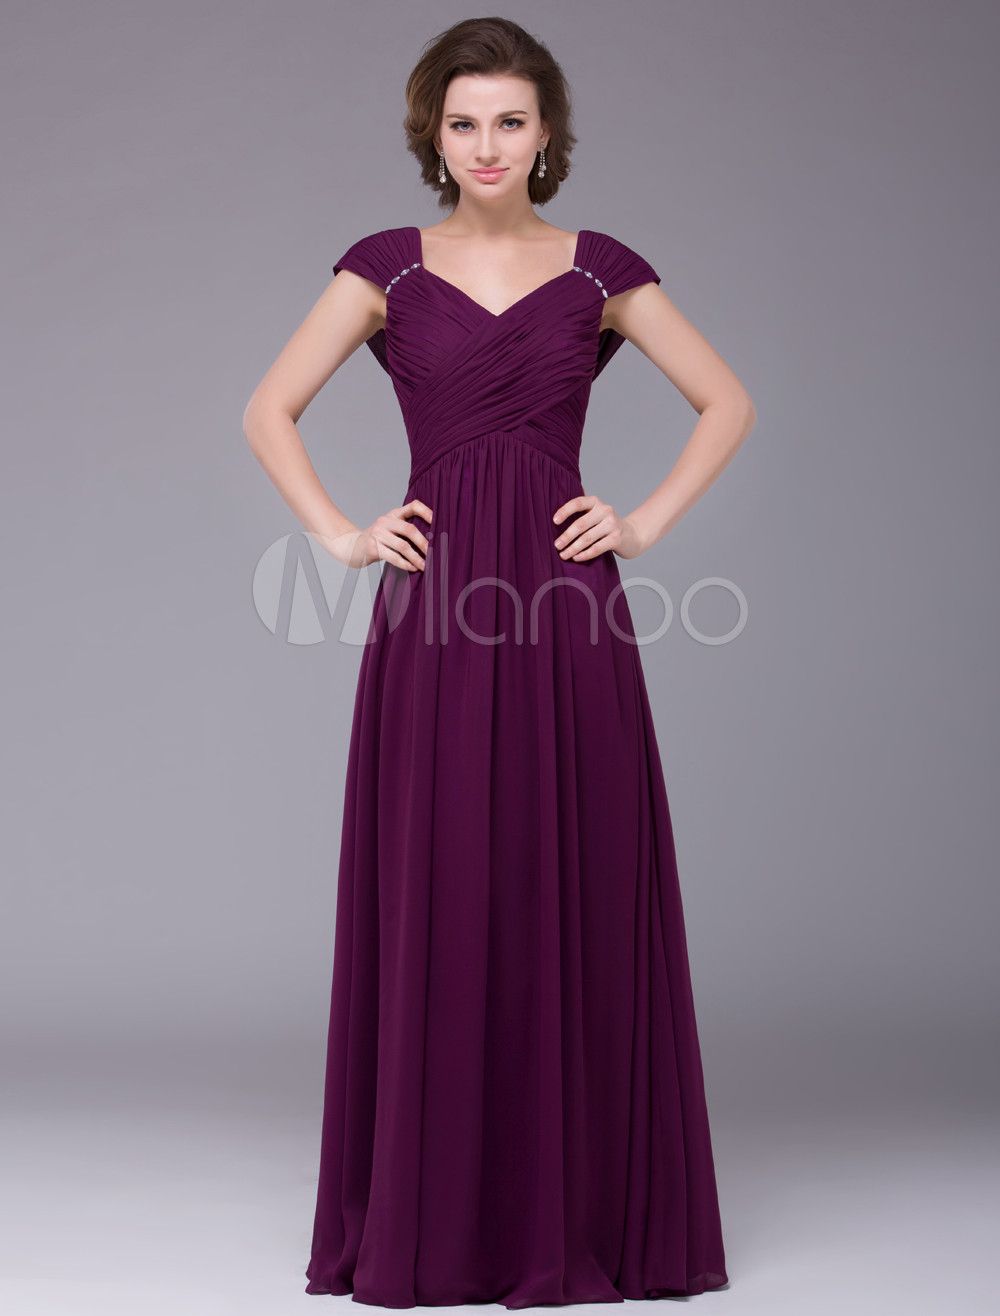 Grape A-line Chiffon Mother of the Bride Dress with Sweetheart Neck Off-The-Shoulder Short Sleeves